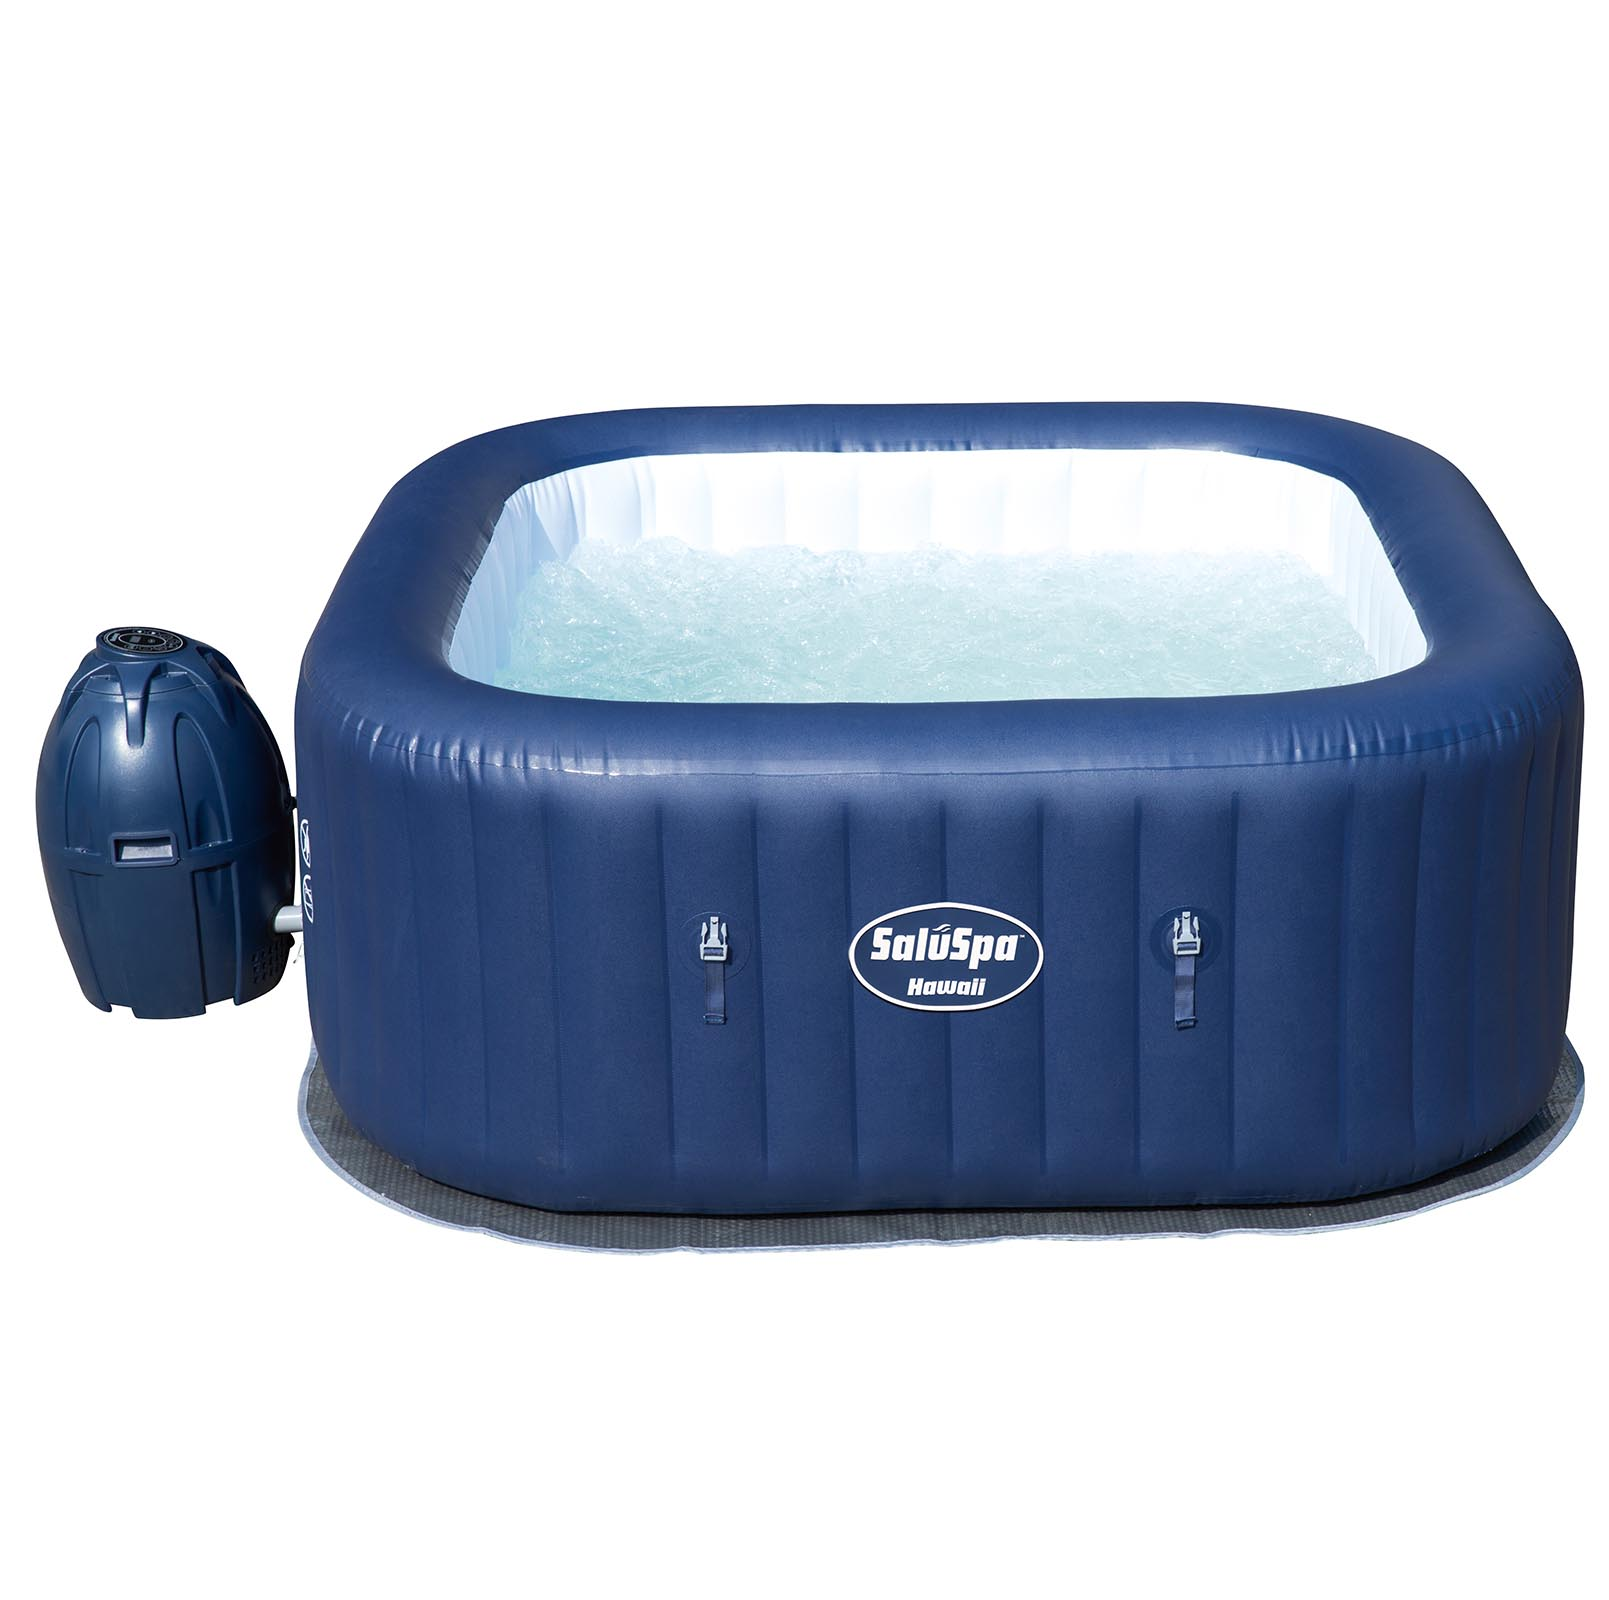 Bestway SaluSpa Hawaii AirJet 6-Person Portable Inflatable Spa Hot ...